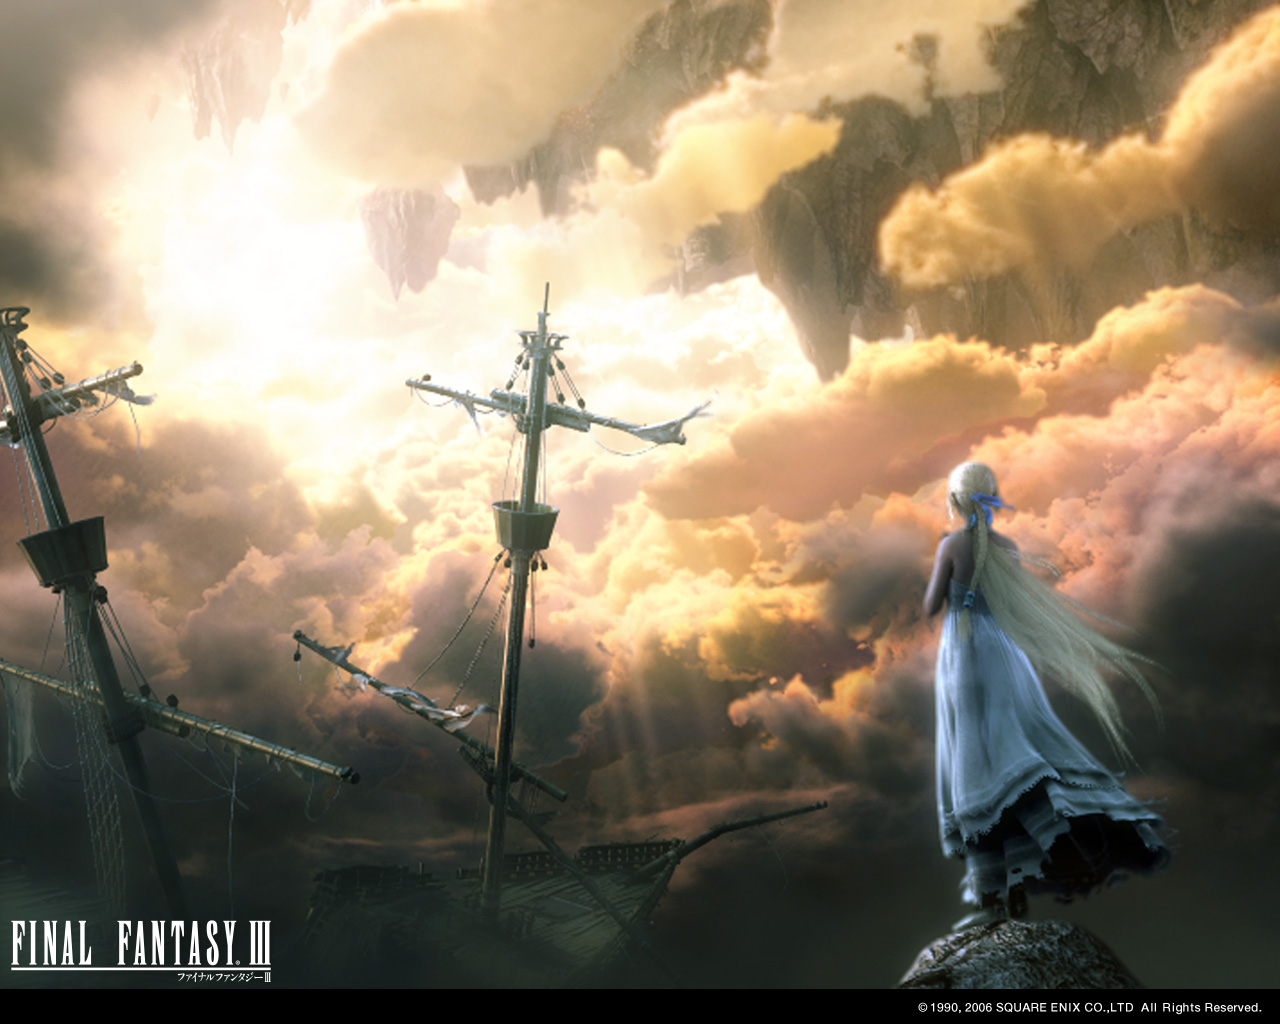 final fantasy wallpaper, final fantasy 7 wallpapers, final fantasy 13 wallpaper, final fantasy x wallpapers, final fantasy 8 wallpapers, final fantasy wallpapers hd-27